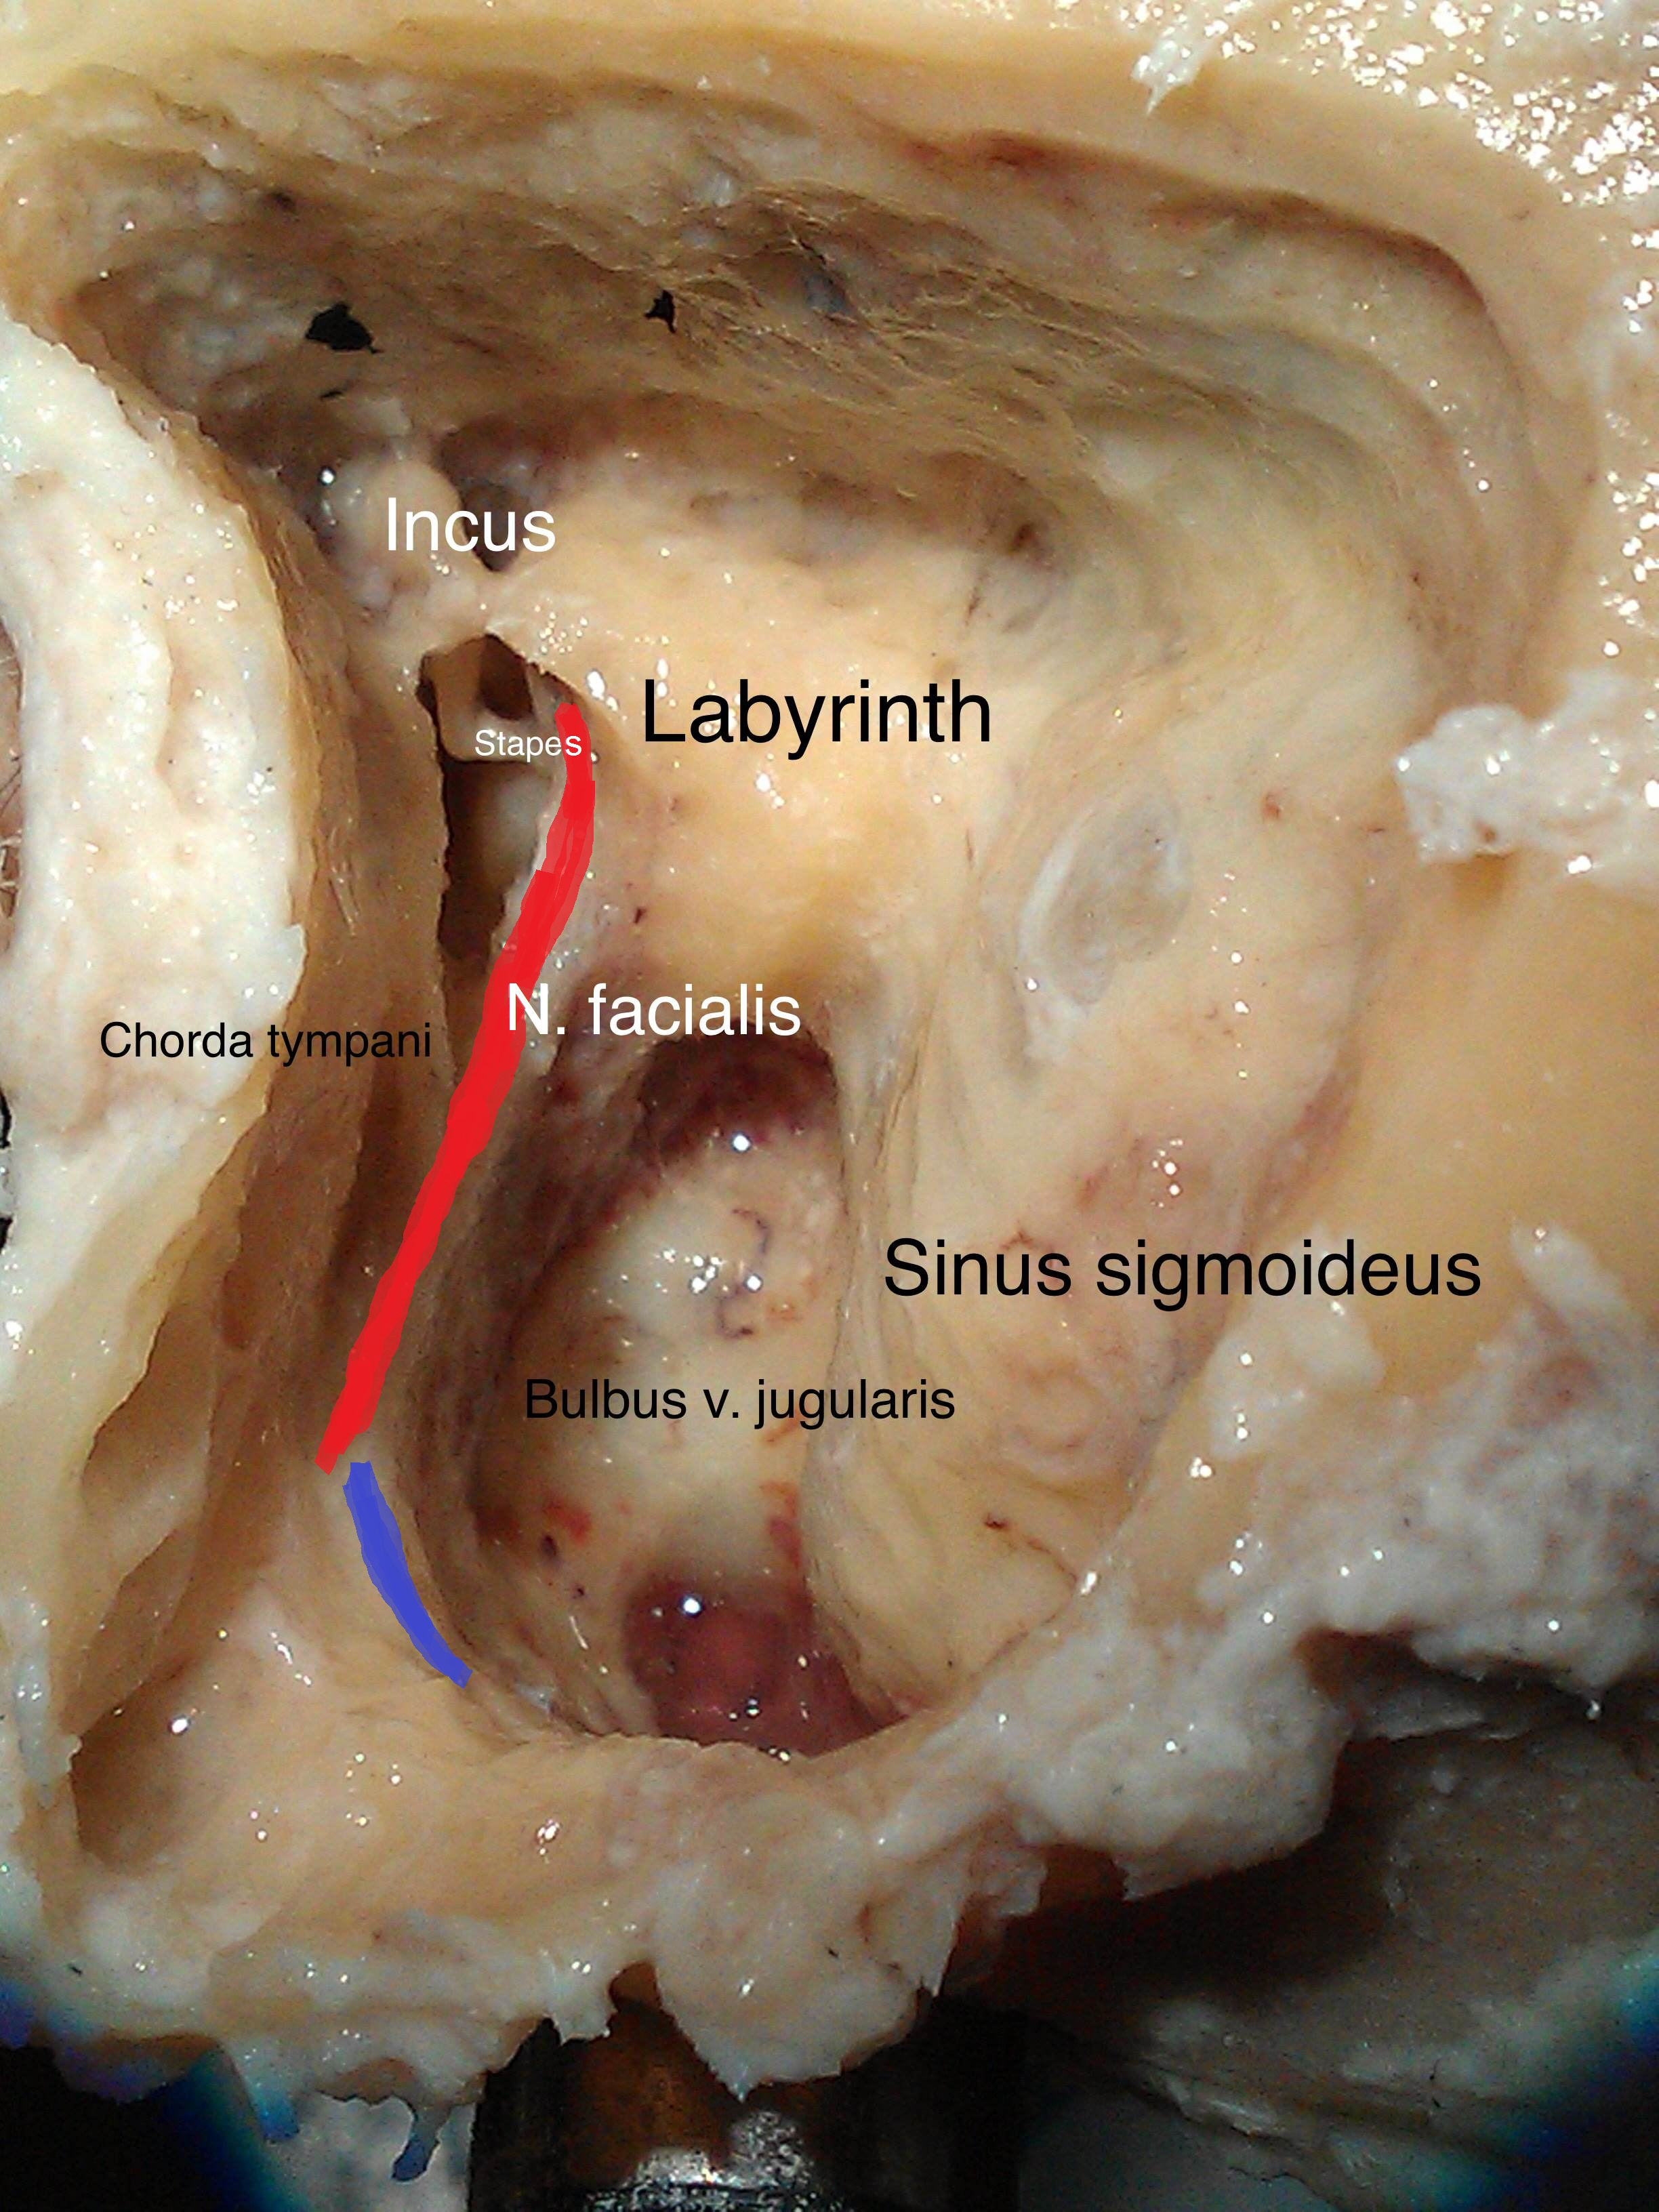 facial nerve temporal bone.jpg